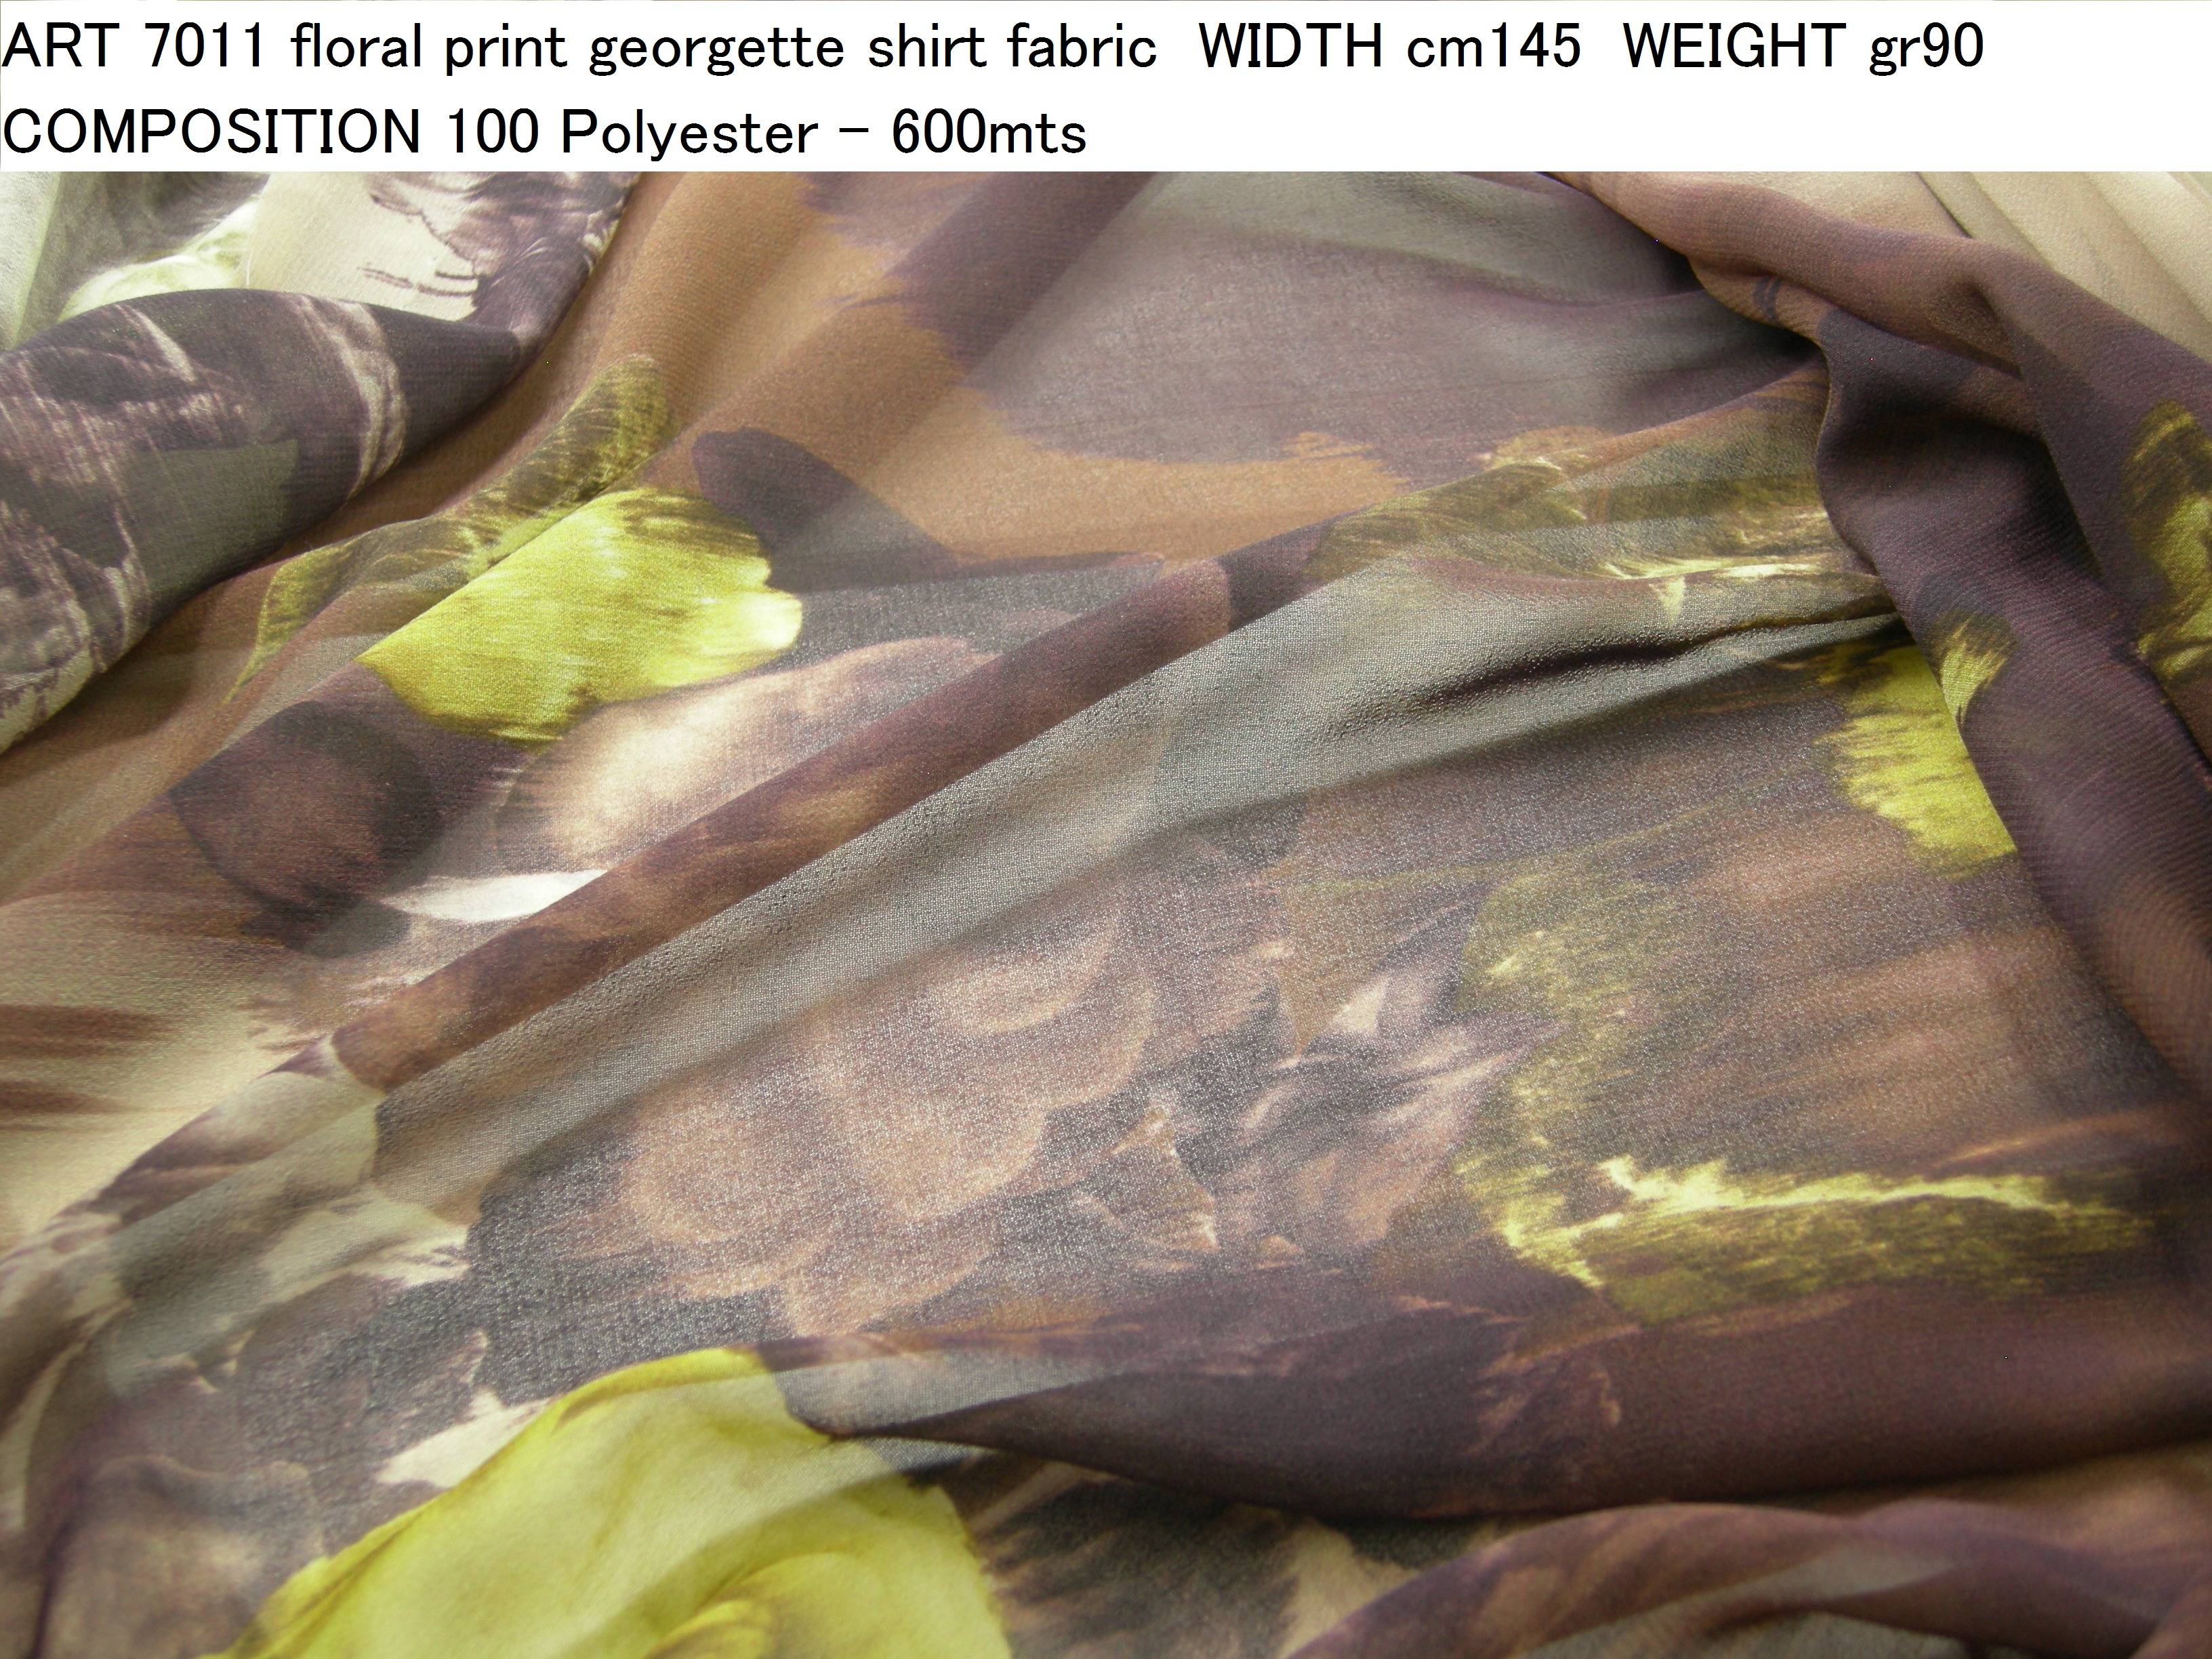 ART 7011 floral print georgette shirt fabric WIDTH cm145 WEIGHT gr90 COMPOSITION 100 Polyester - 600mts